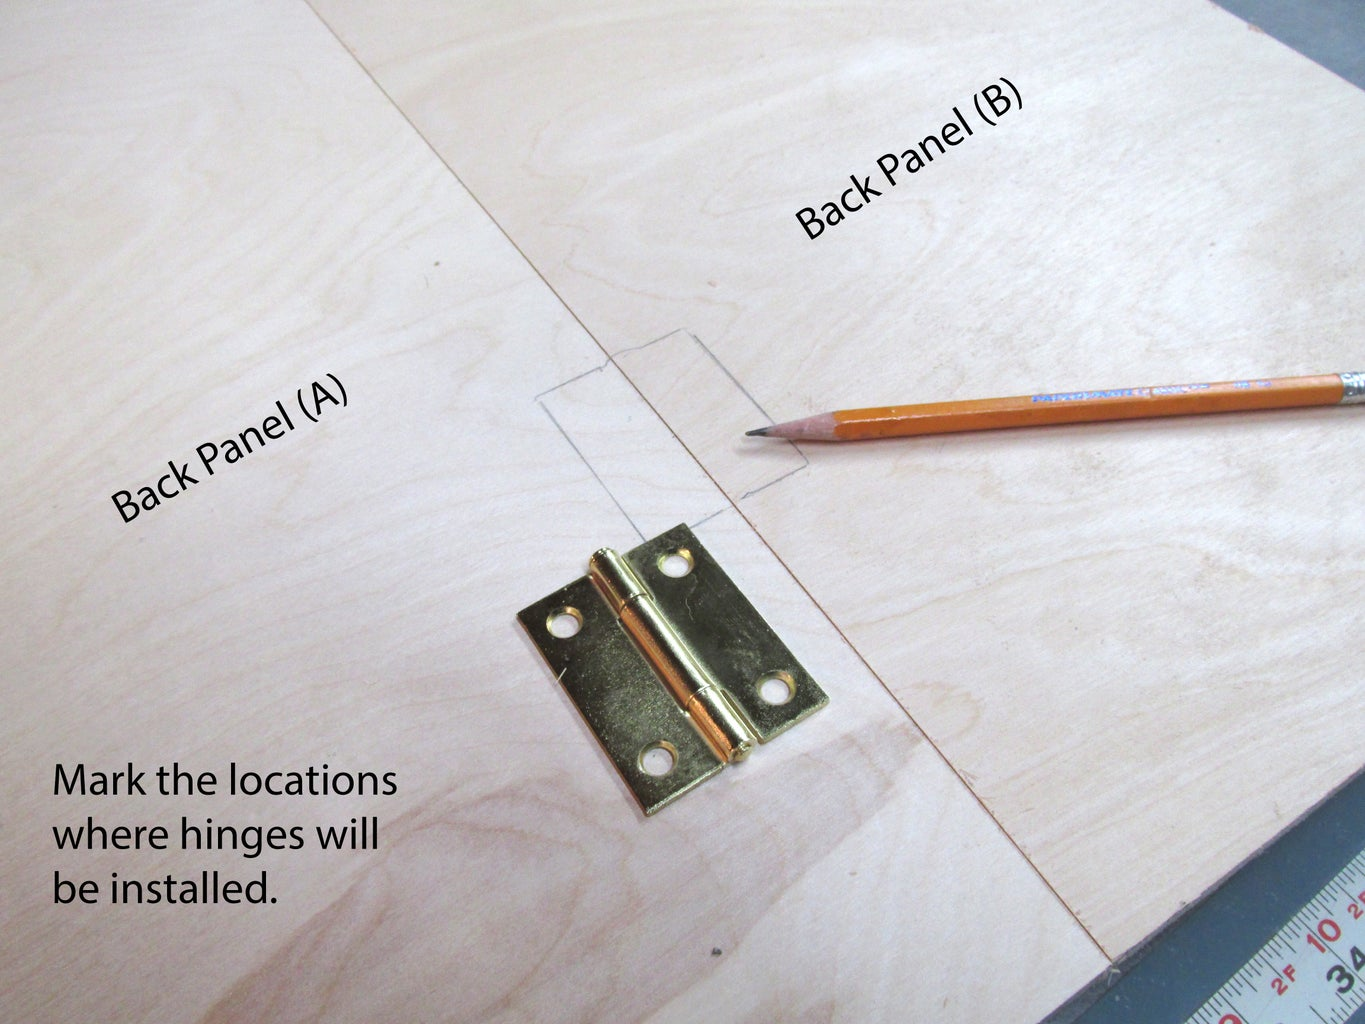 Making the Back Panel